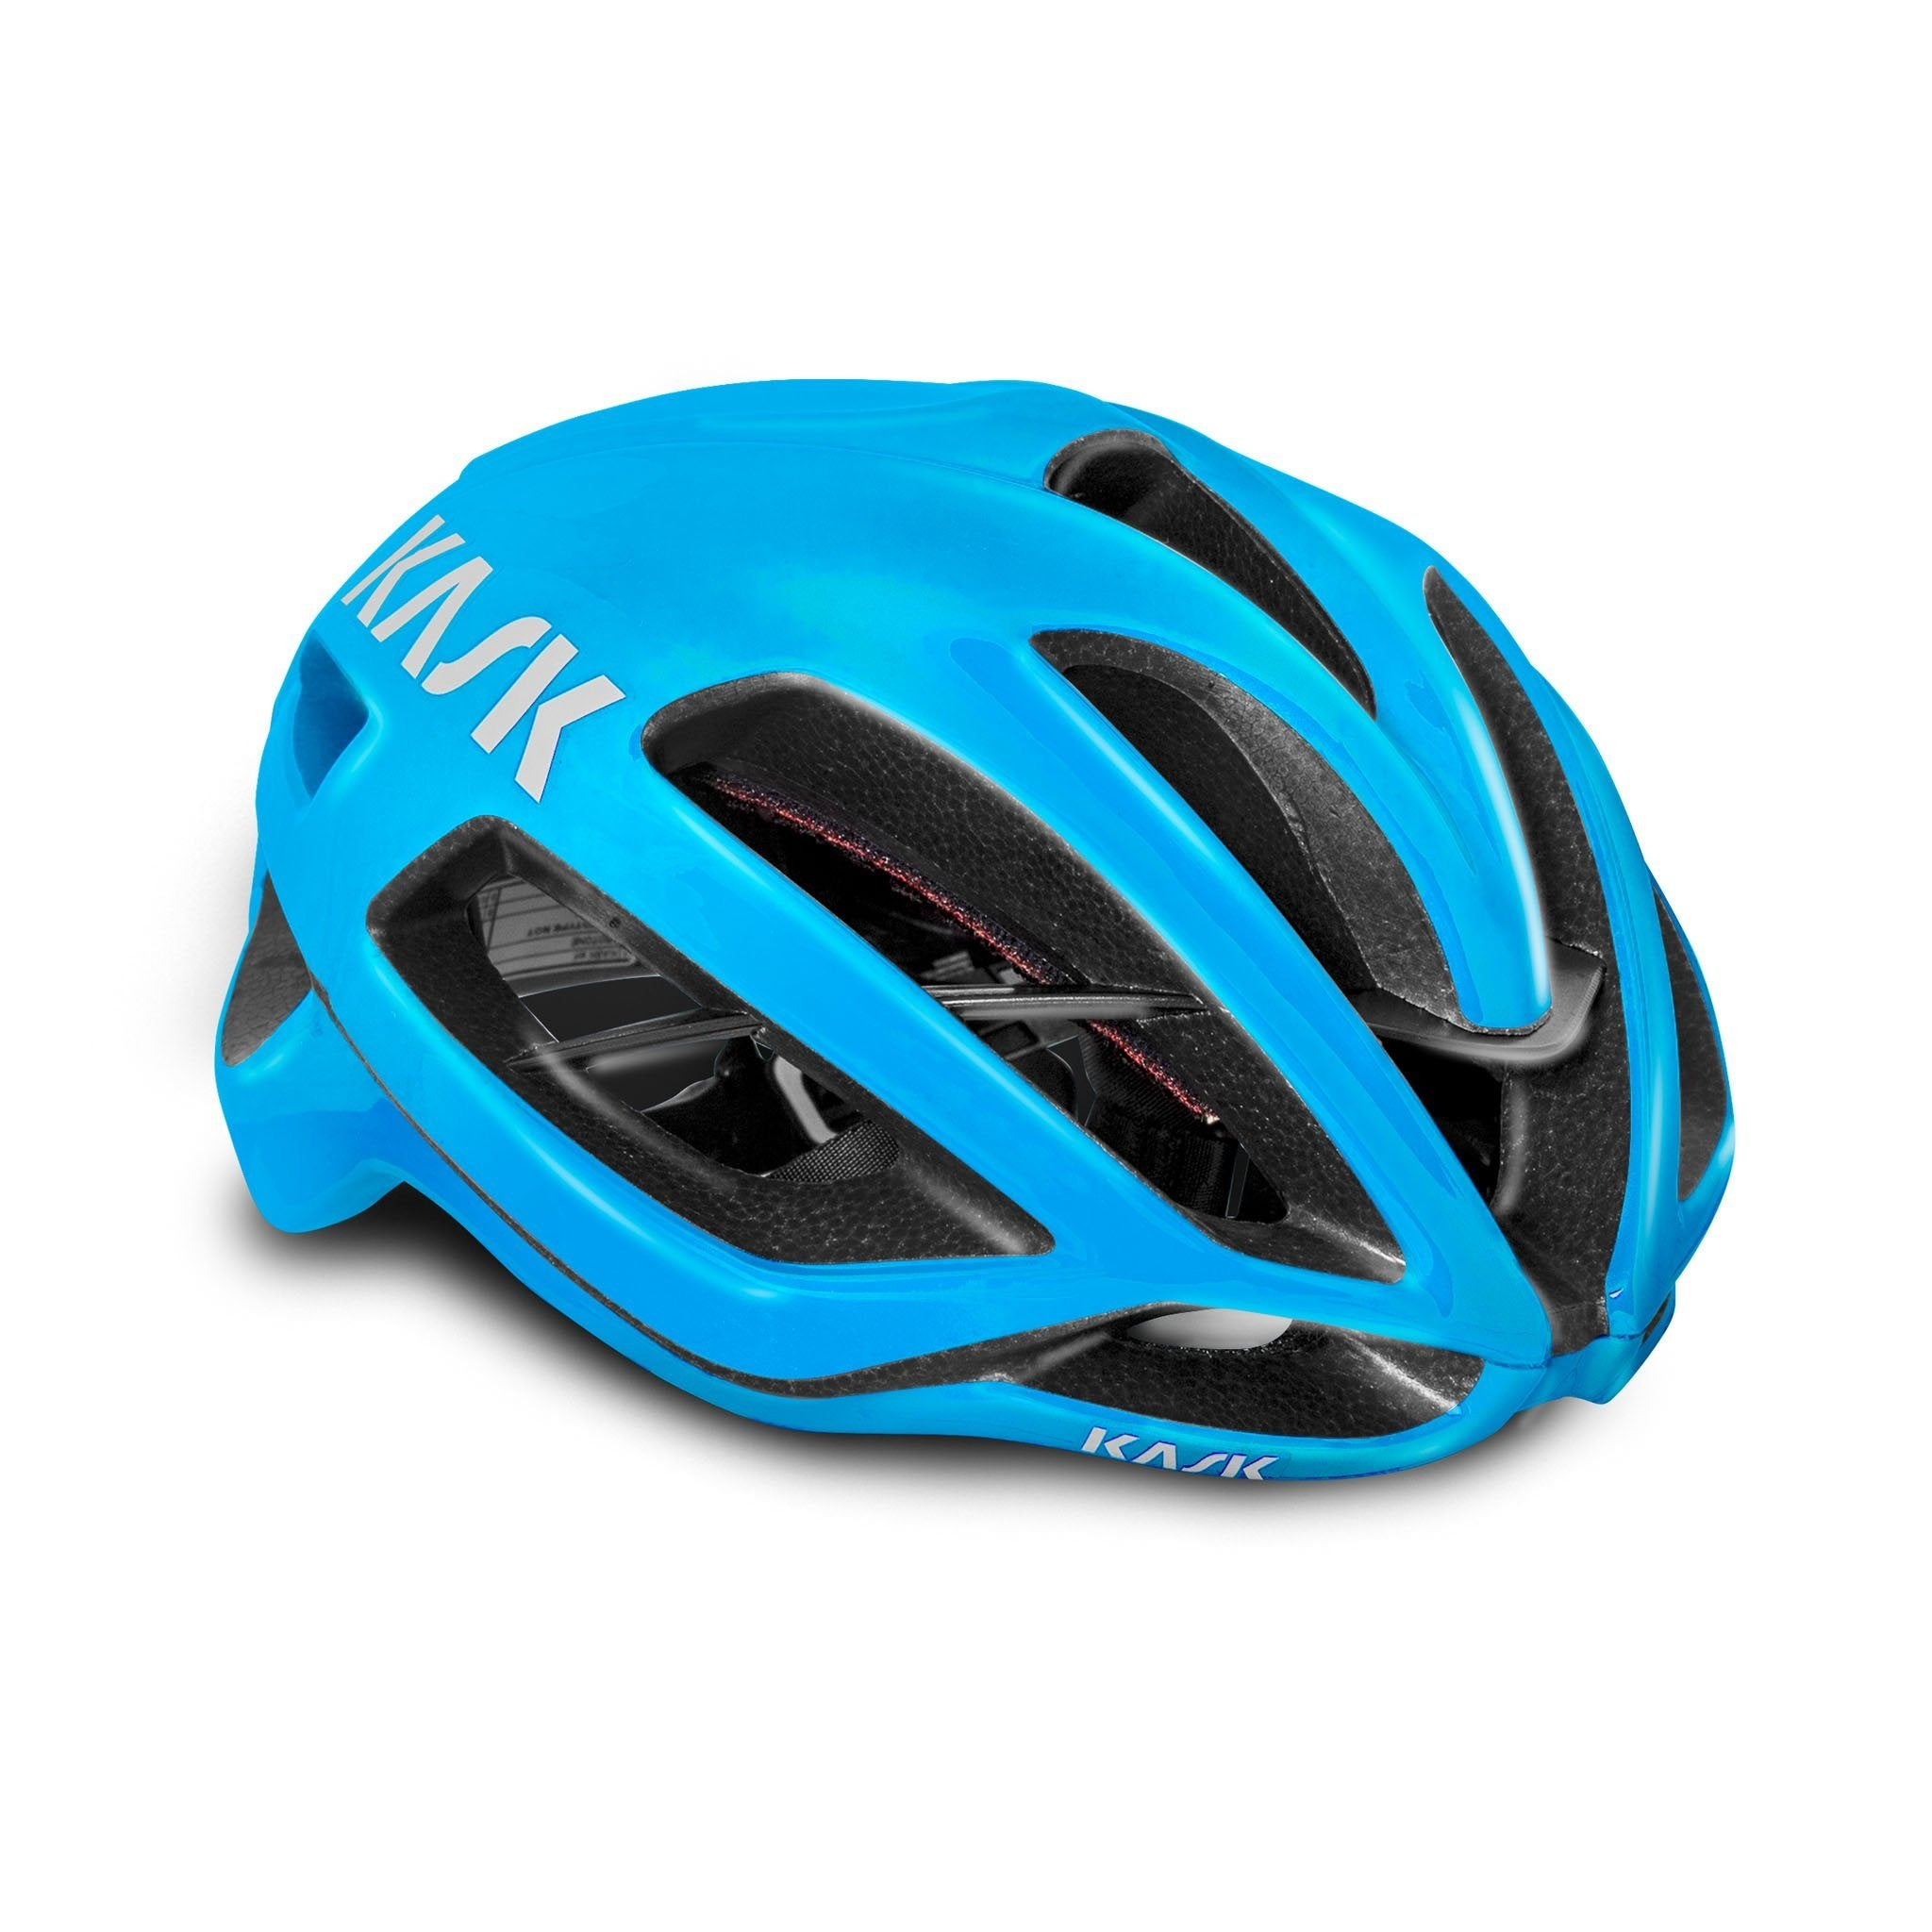 Kask Protone Helmet - Light Blue KASK S